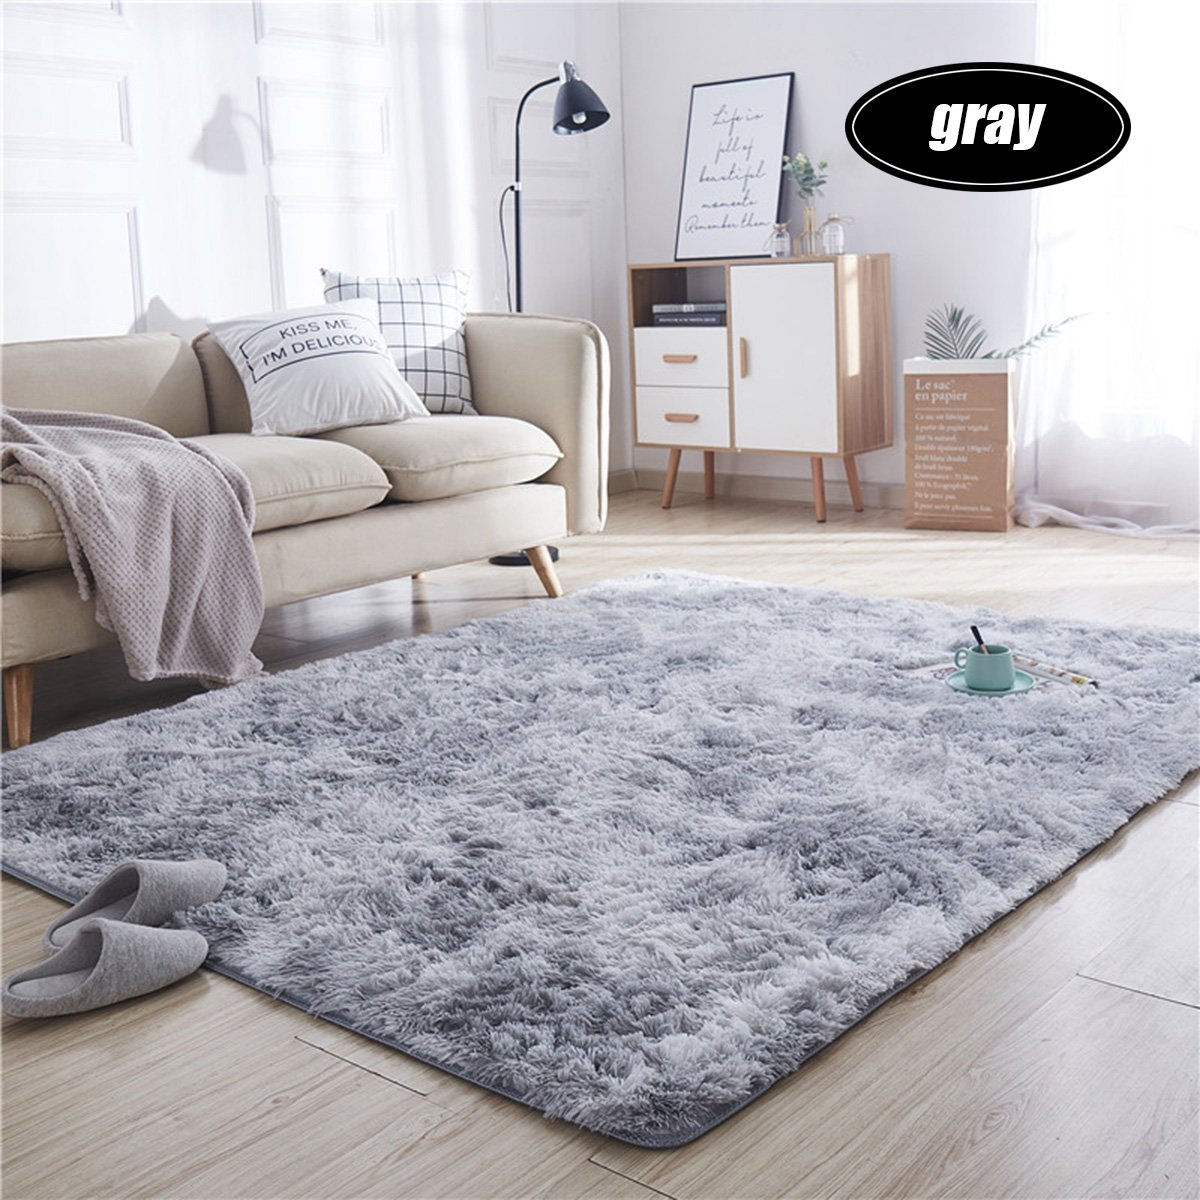 Rectangle Ultra Soft Area Rugs Fluffy, Carpet Images For Living Room